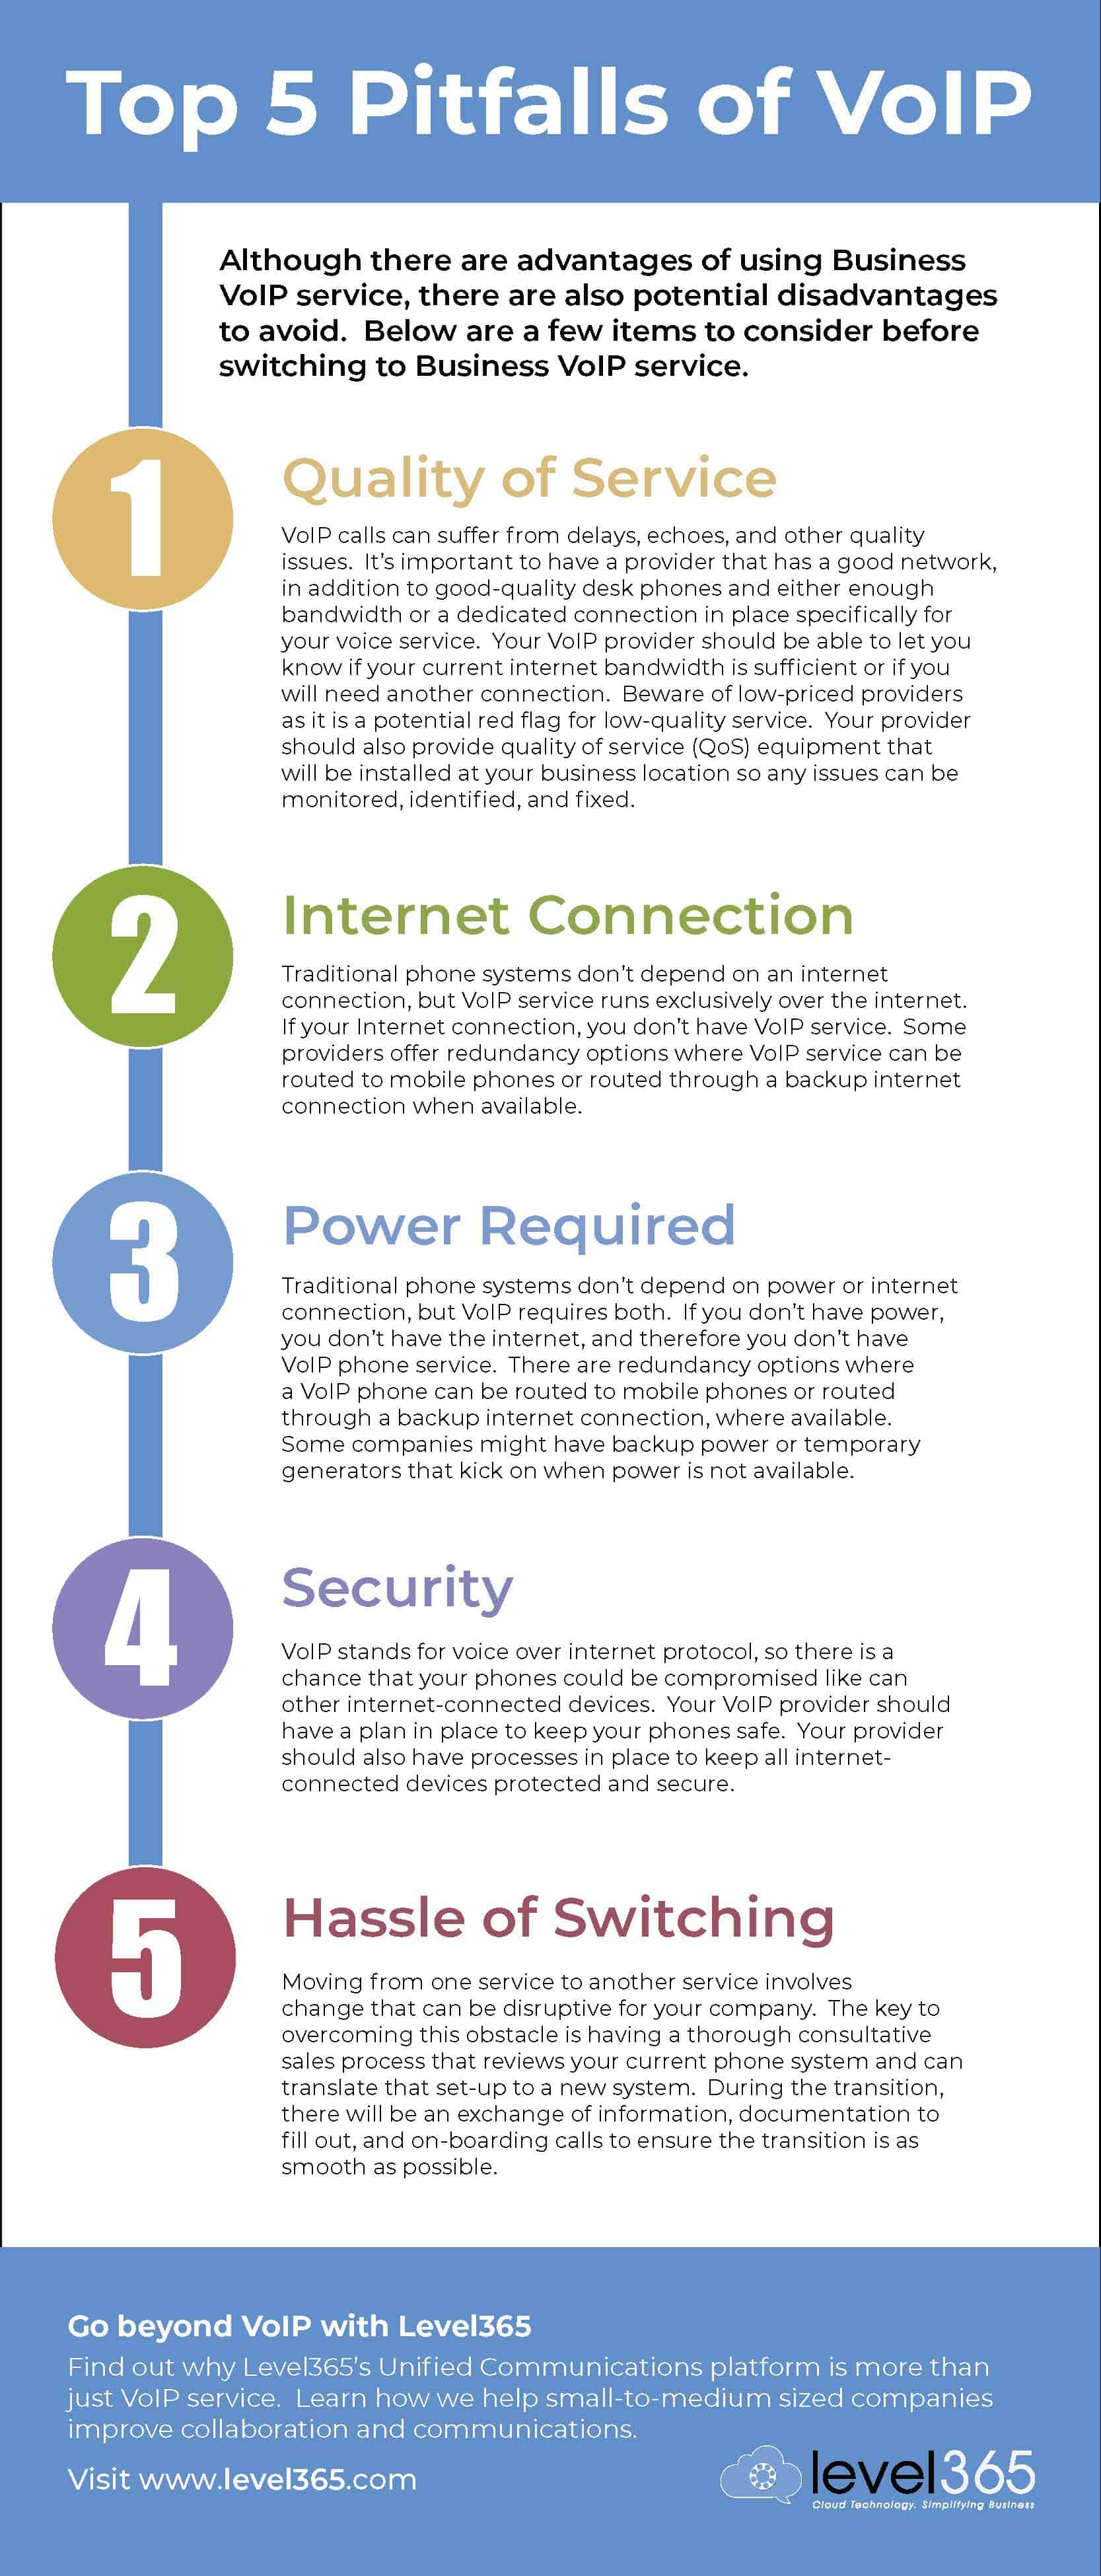 Infographic on Top 5 Pitfalls of Business VoIP